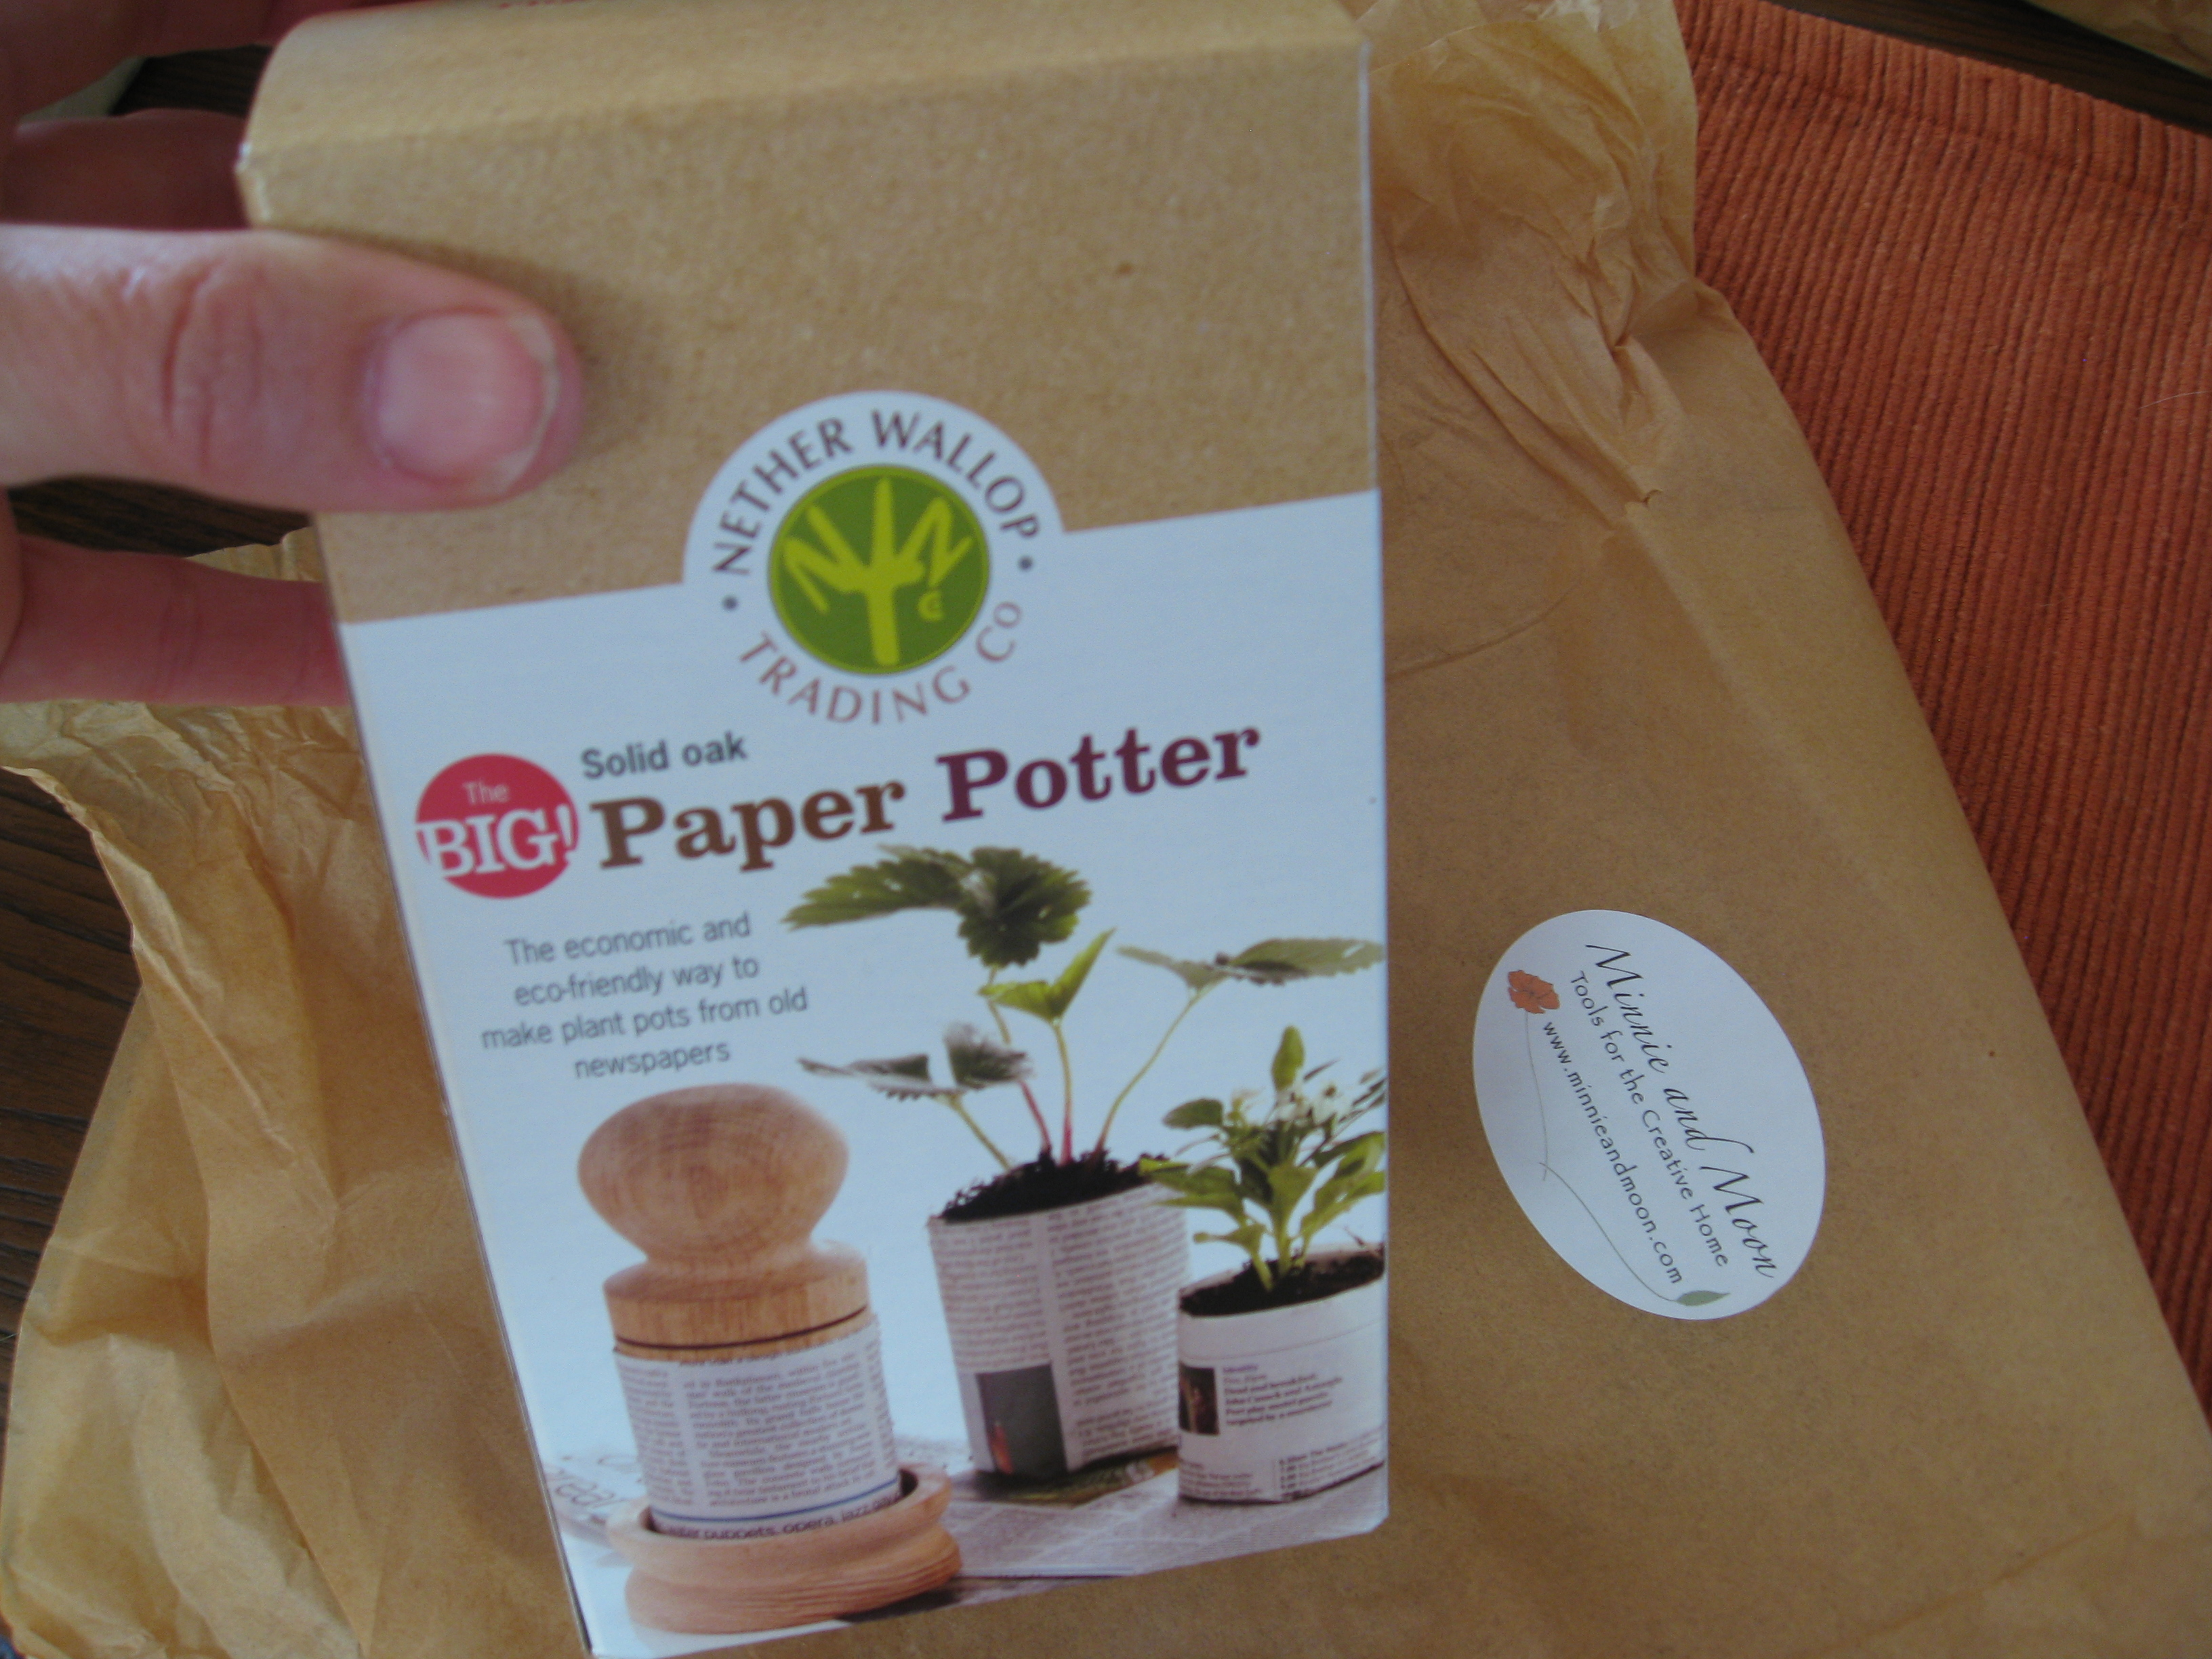 A want for some, a need for others: the Paper Pot Maker